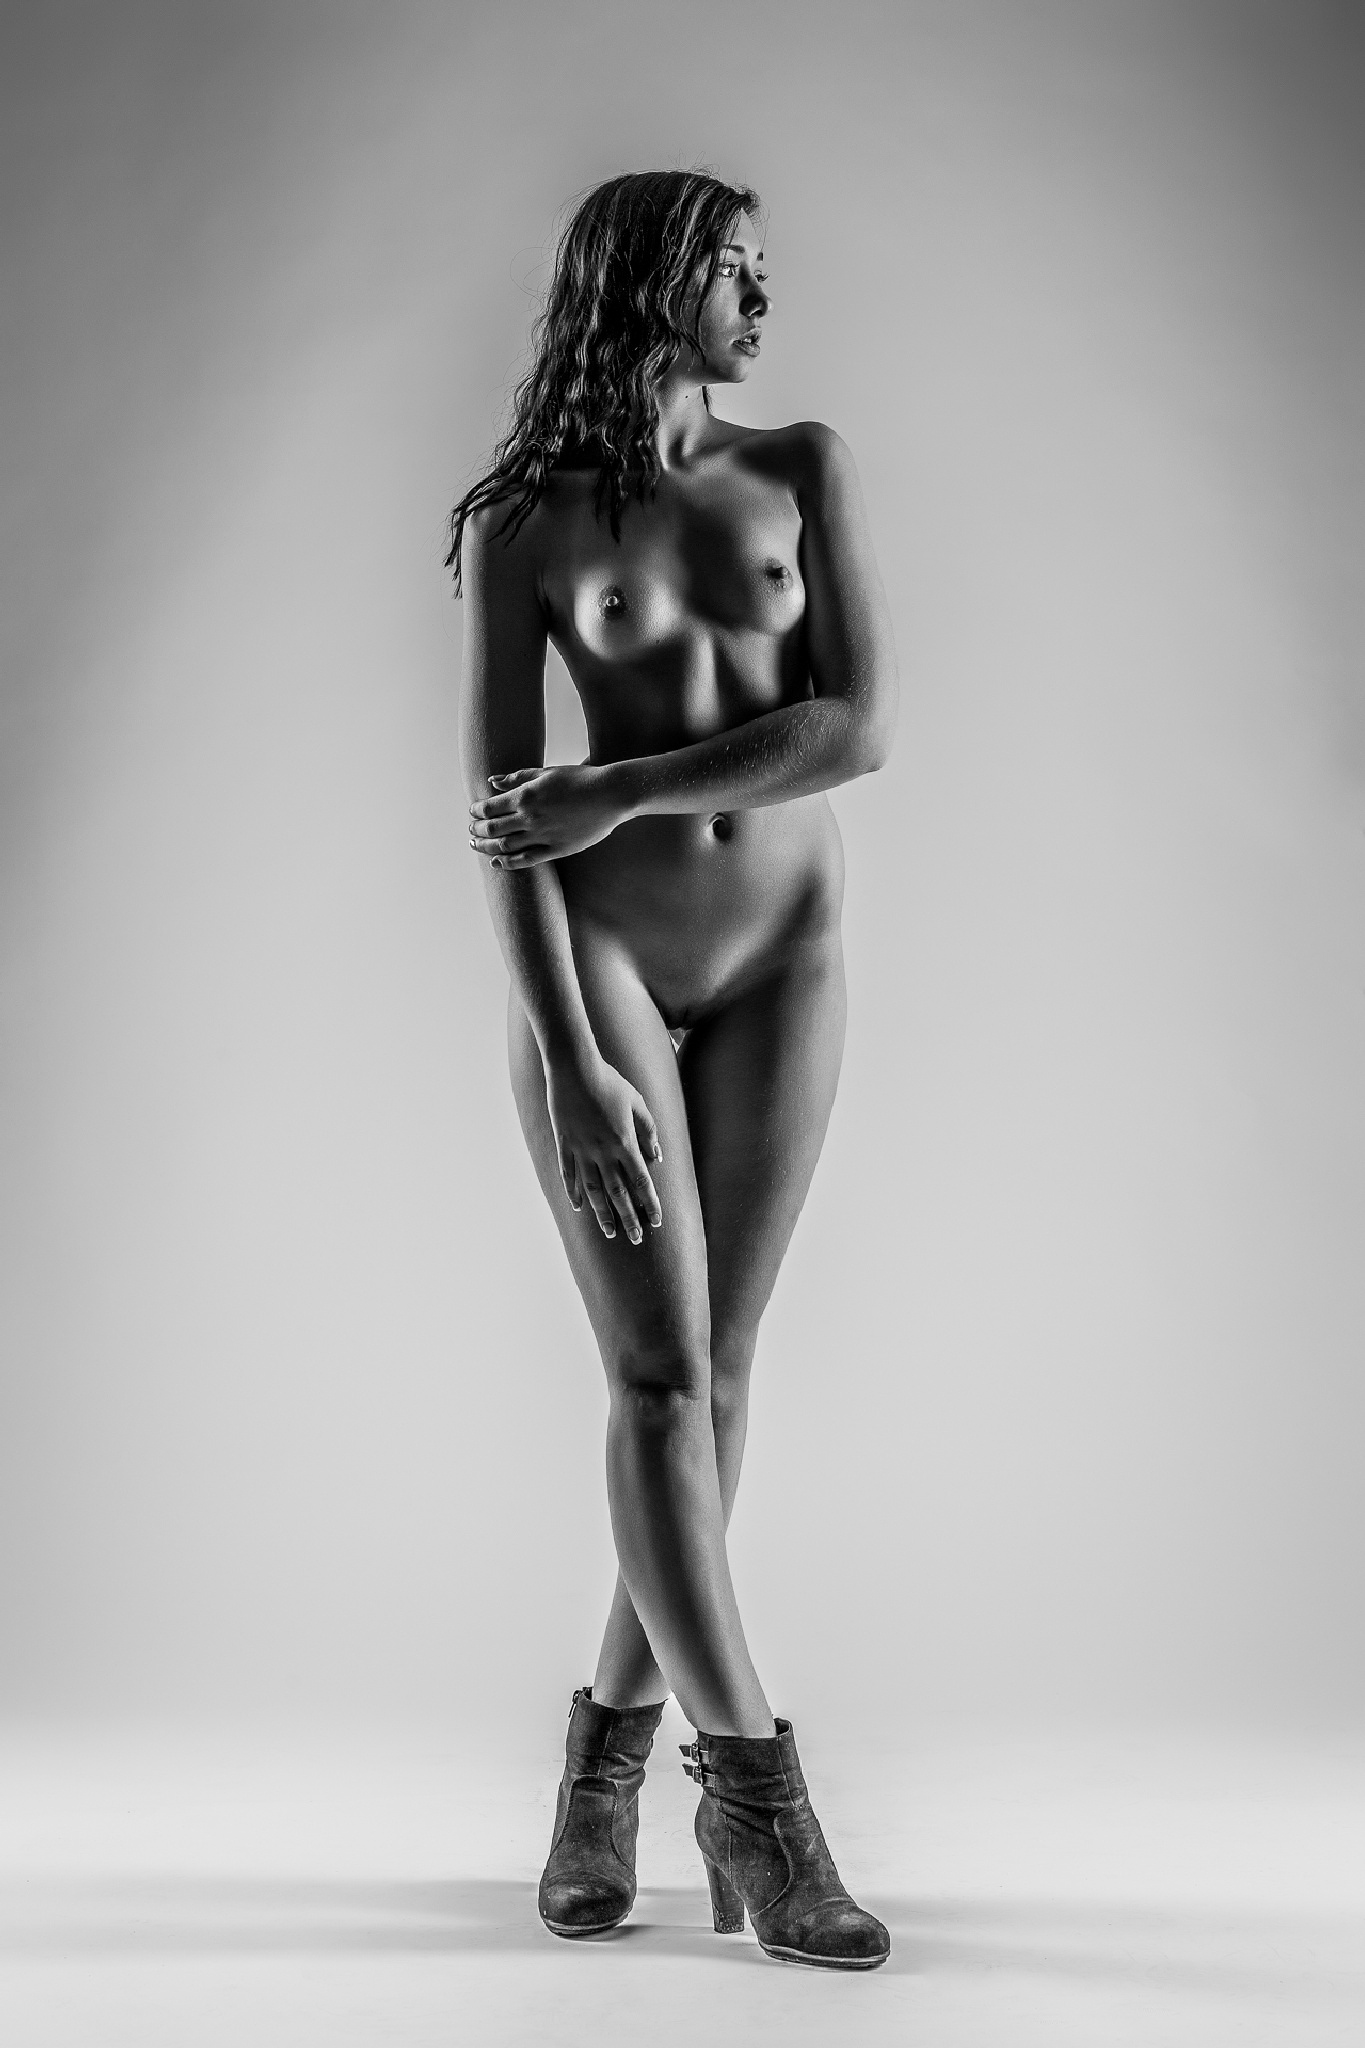 Just Nude by Schnabler